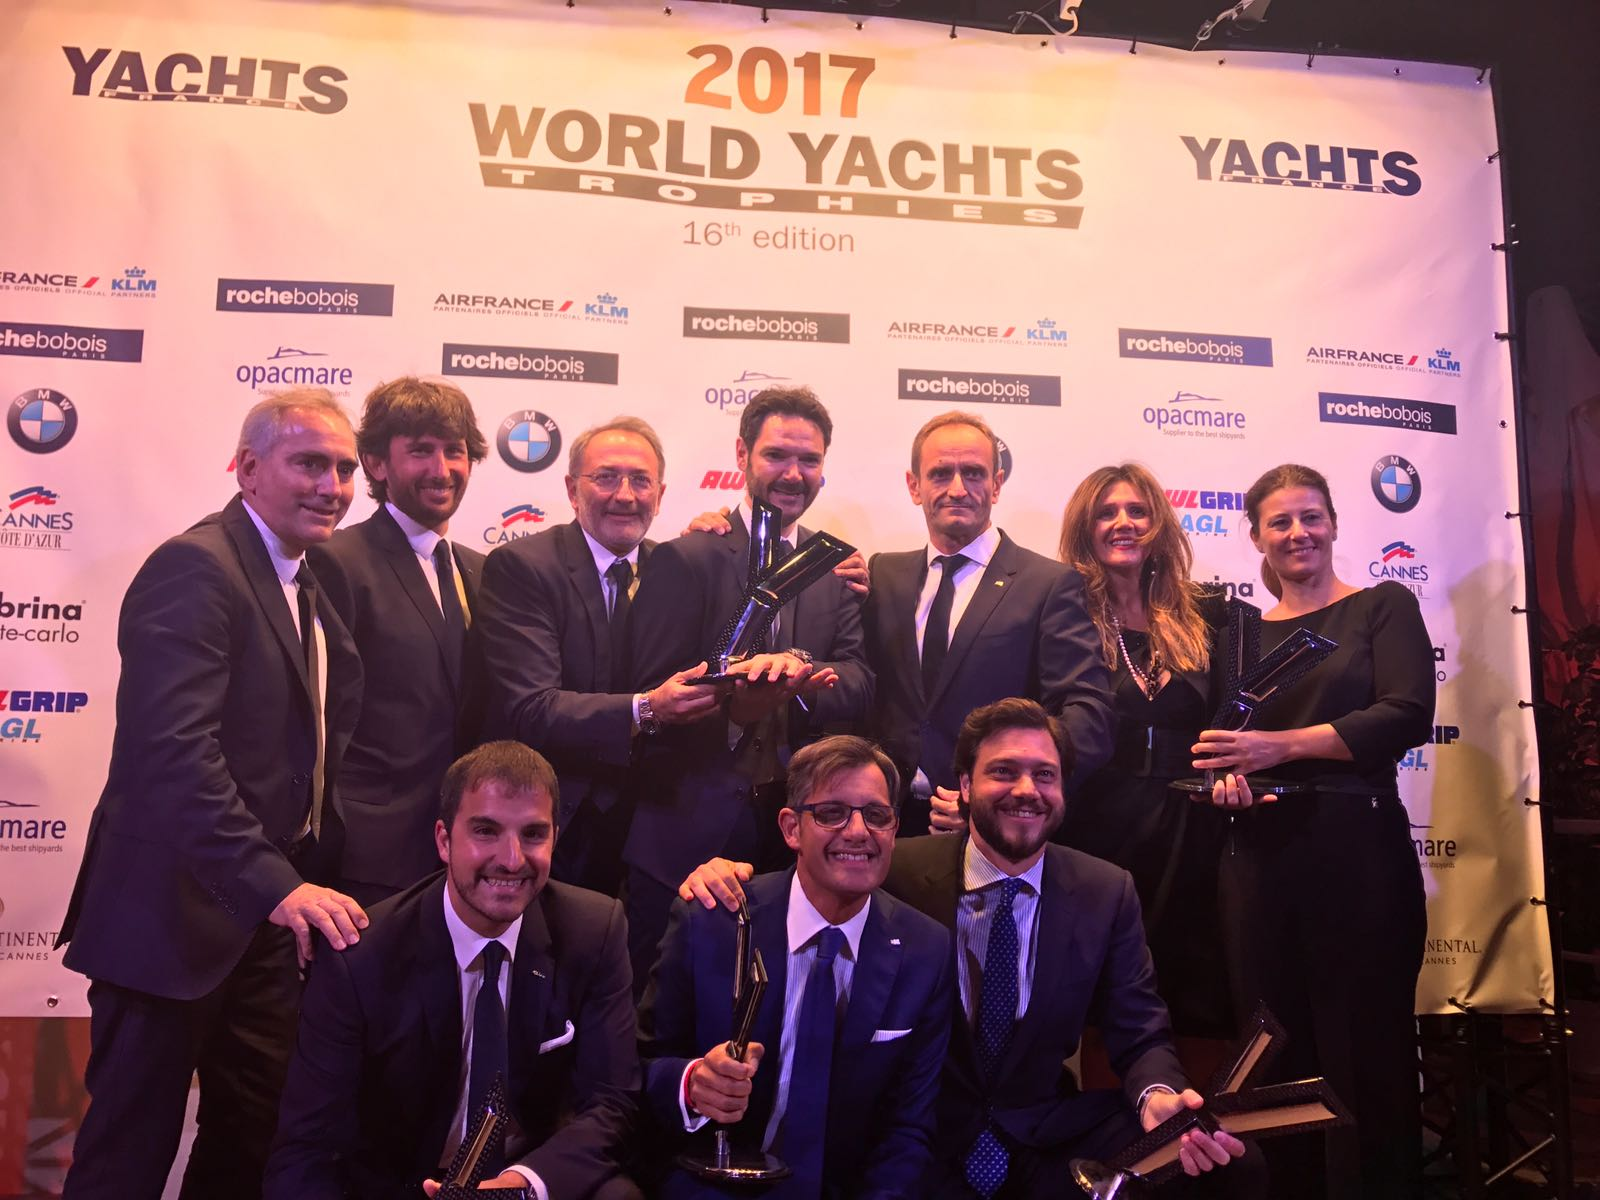 Ferretti Group won 5 awards at the World Yachts Trophies 2017, including Best Shipyard